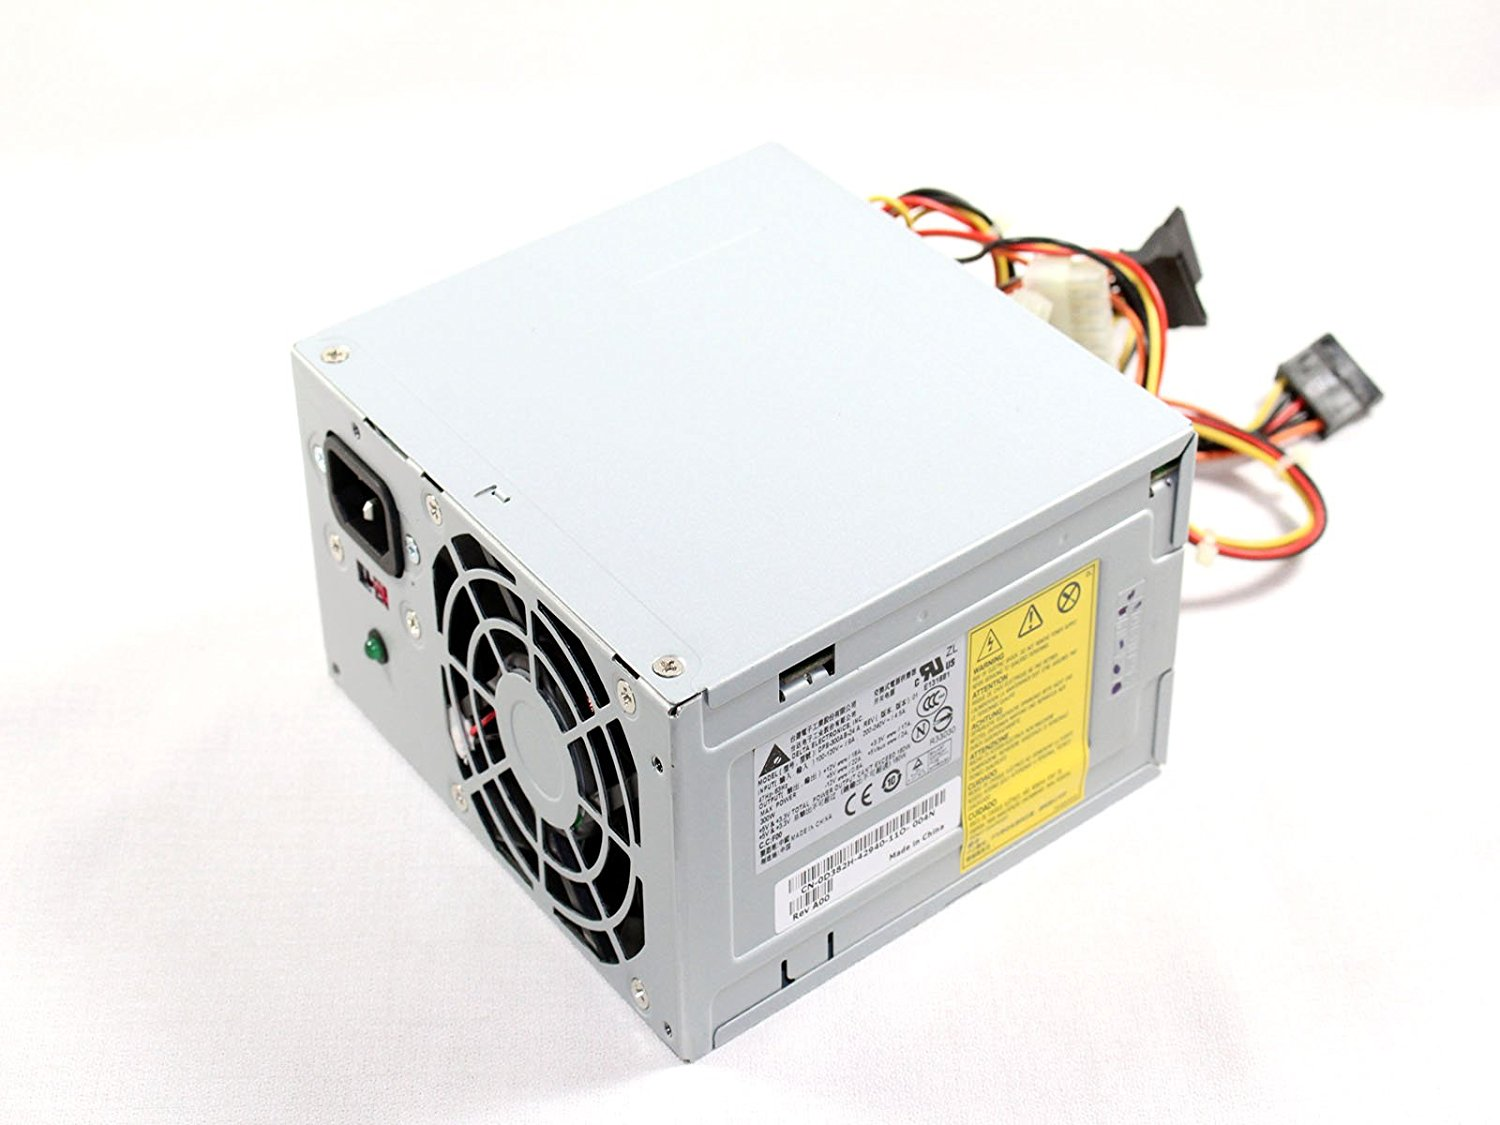 Genuine 250 Watt-300 Watt Power Supply Replacement. Features: 280 Watt-300 Watt Max Output, 100-127V or 200-240V Input, Dimensions: 5 7/8 W x 3 3/8 H x 5.5 D - Inches, For Dell Vostro 200 / 201 / 400 / 220 Mini Towers (not Slim towers!!), For Dell Inspiron 530 / 531 / 541 / 518 / 519 / 537 / 545 /